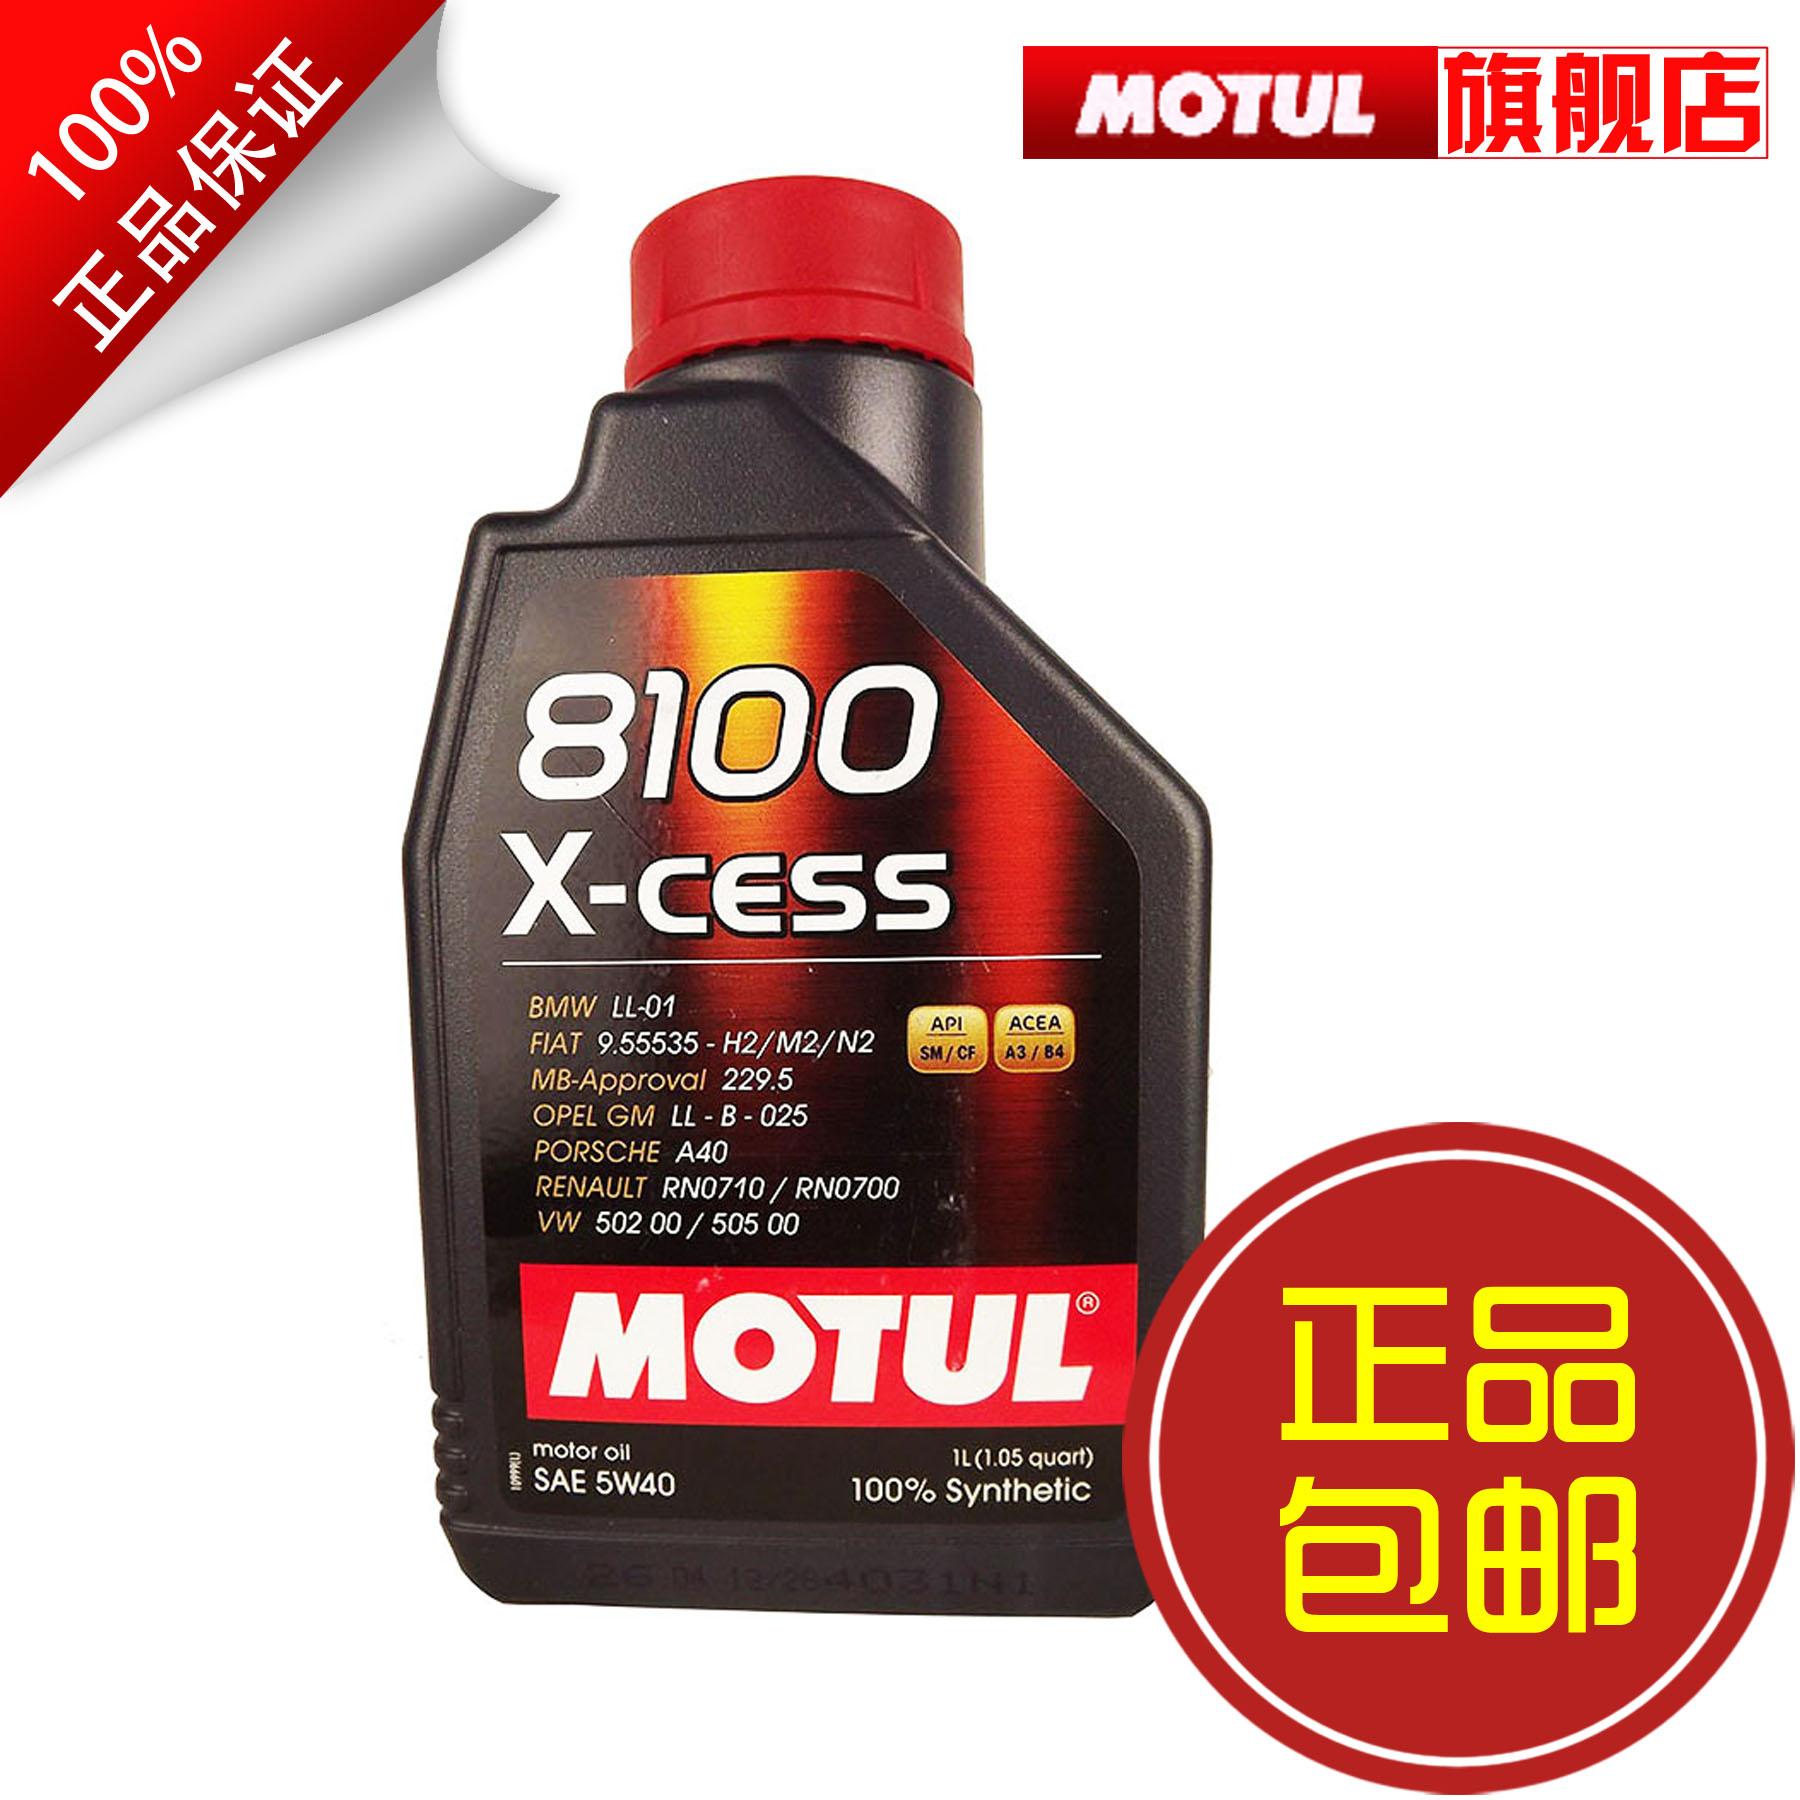 motul 8100 x cess 5w 40 sn 1l. Black Bedroom Furniture Sets. Home Design Ideas